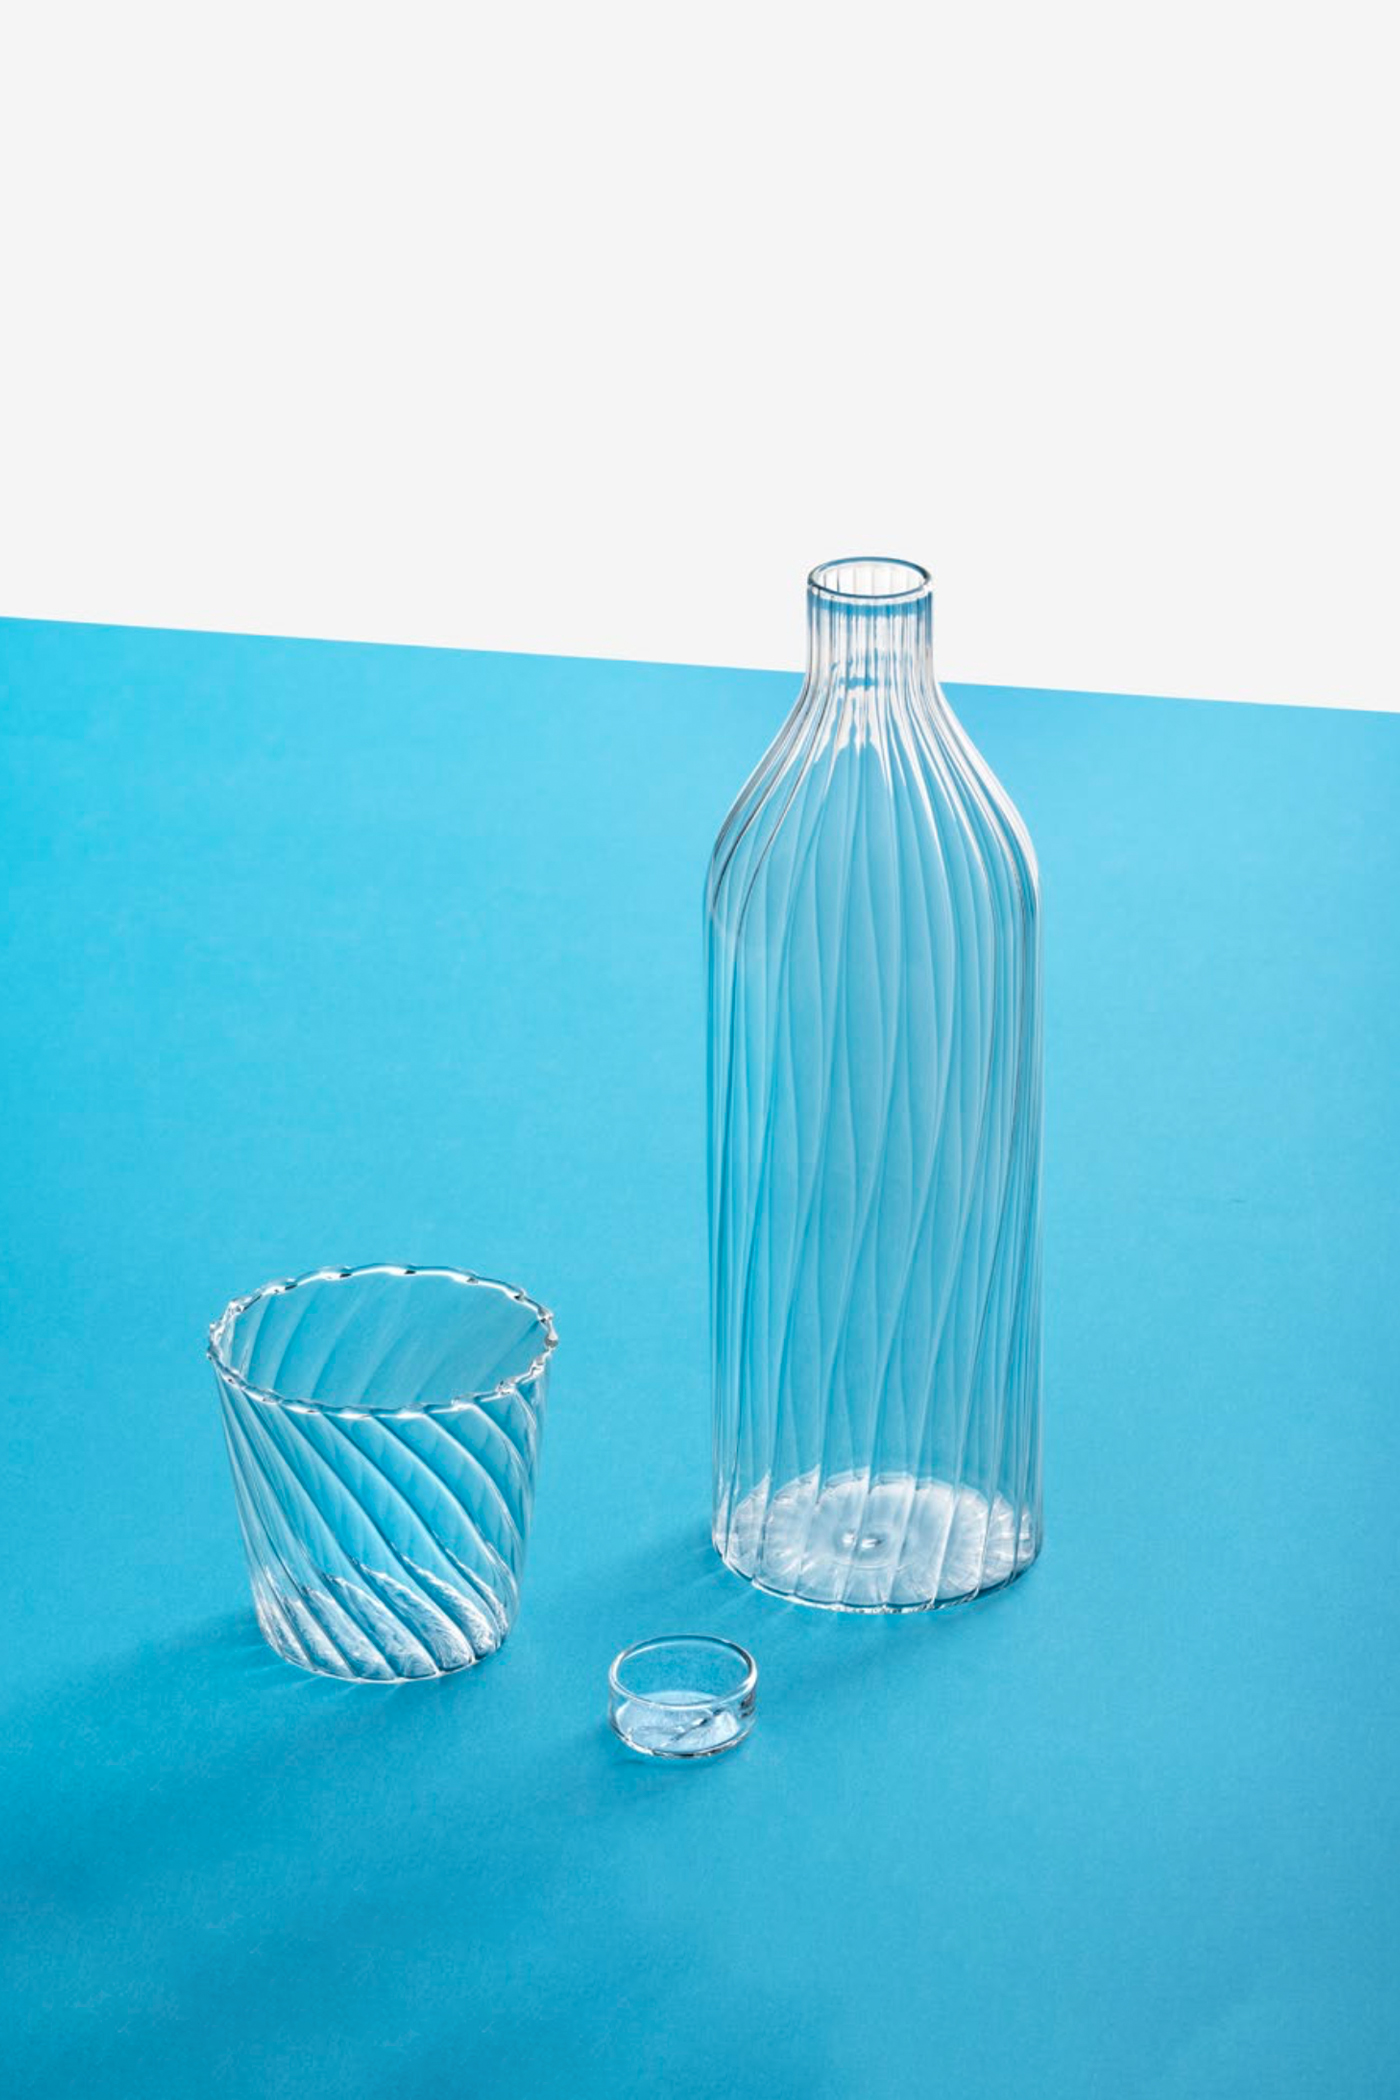 Ichendorf Venezia Ottico Bottle With Lid